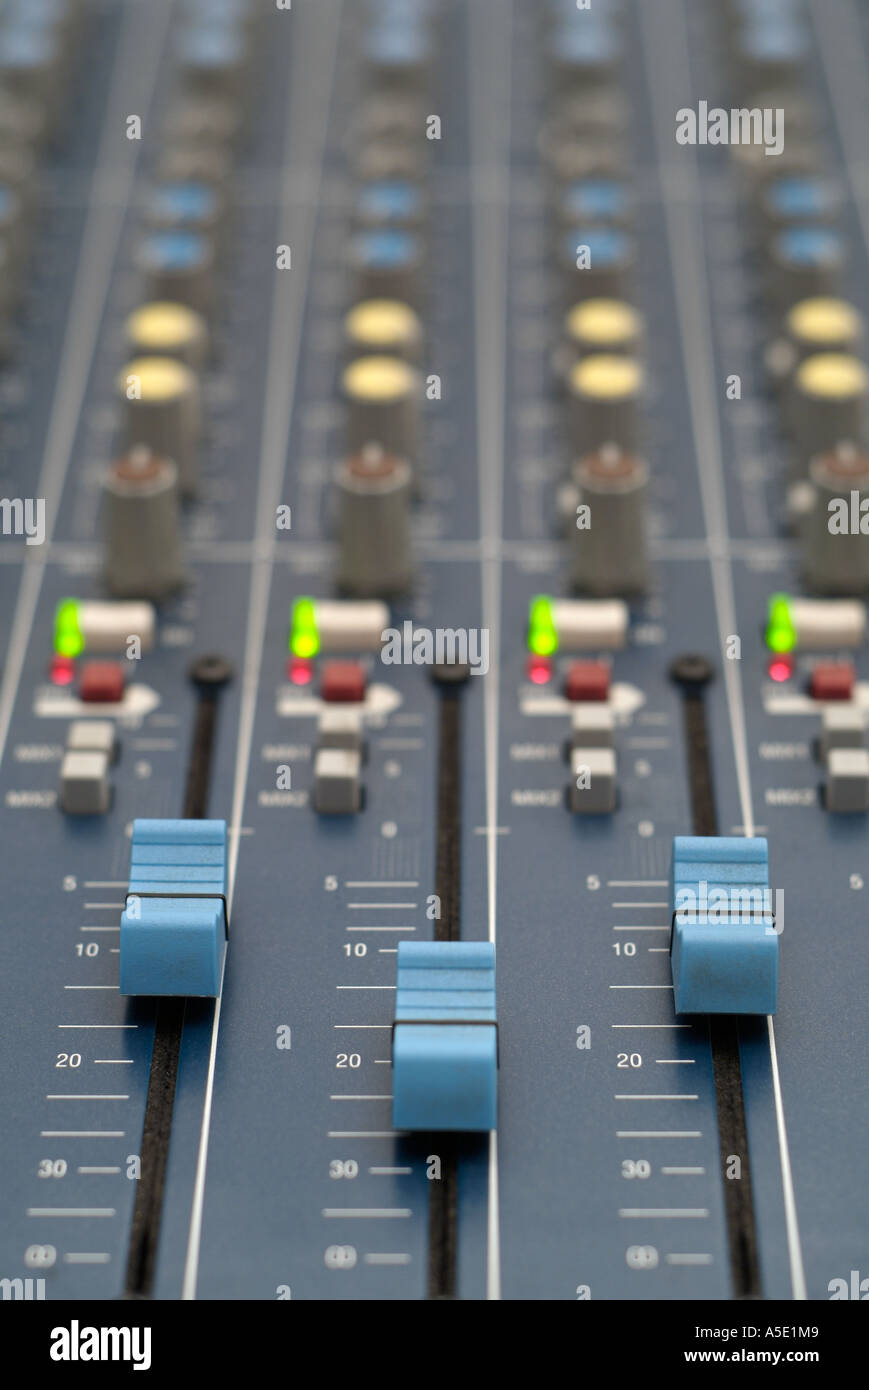 electronic mixing desk controls in a recording studio close up